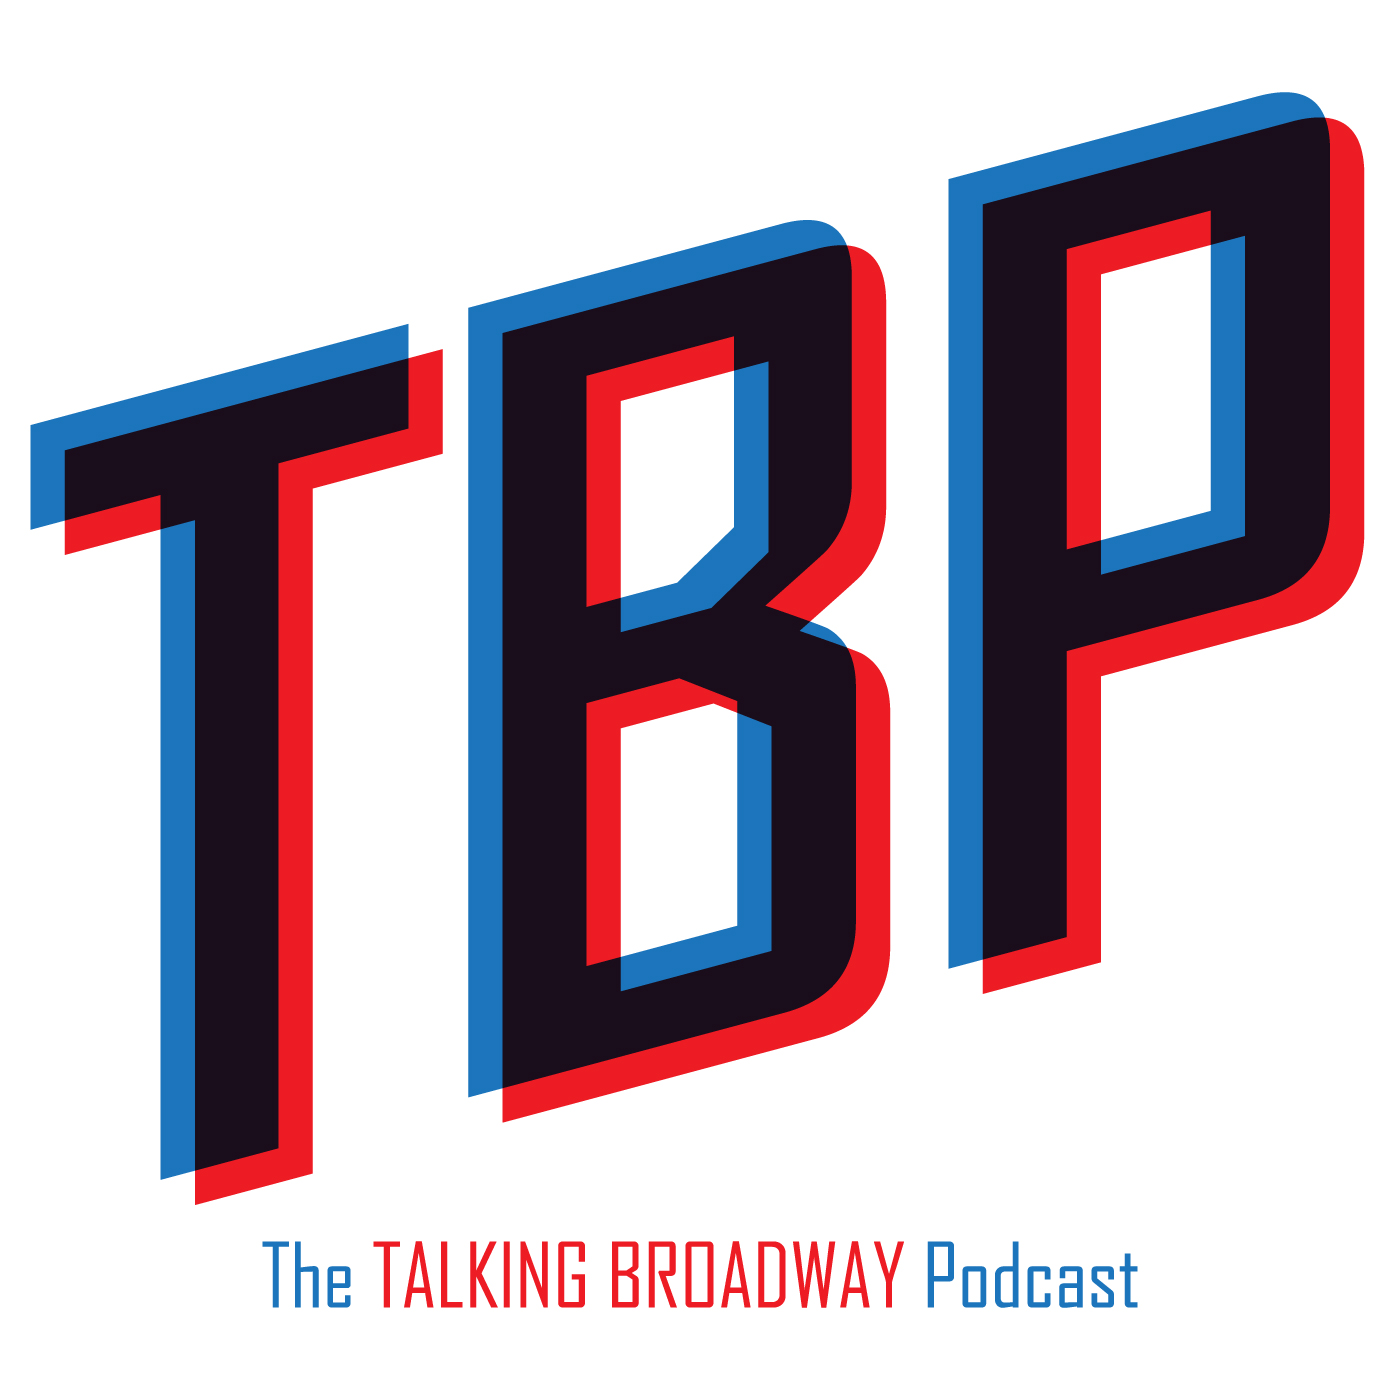 The TALKING BROADWAY Podcast